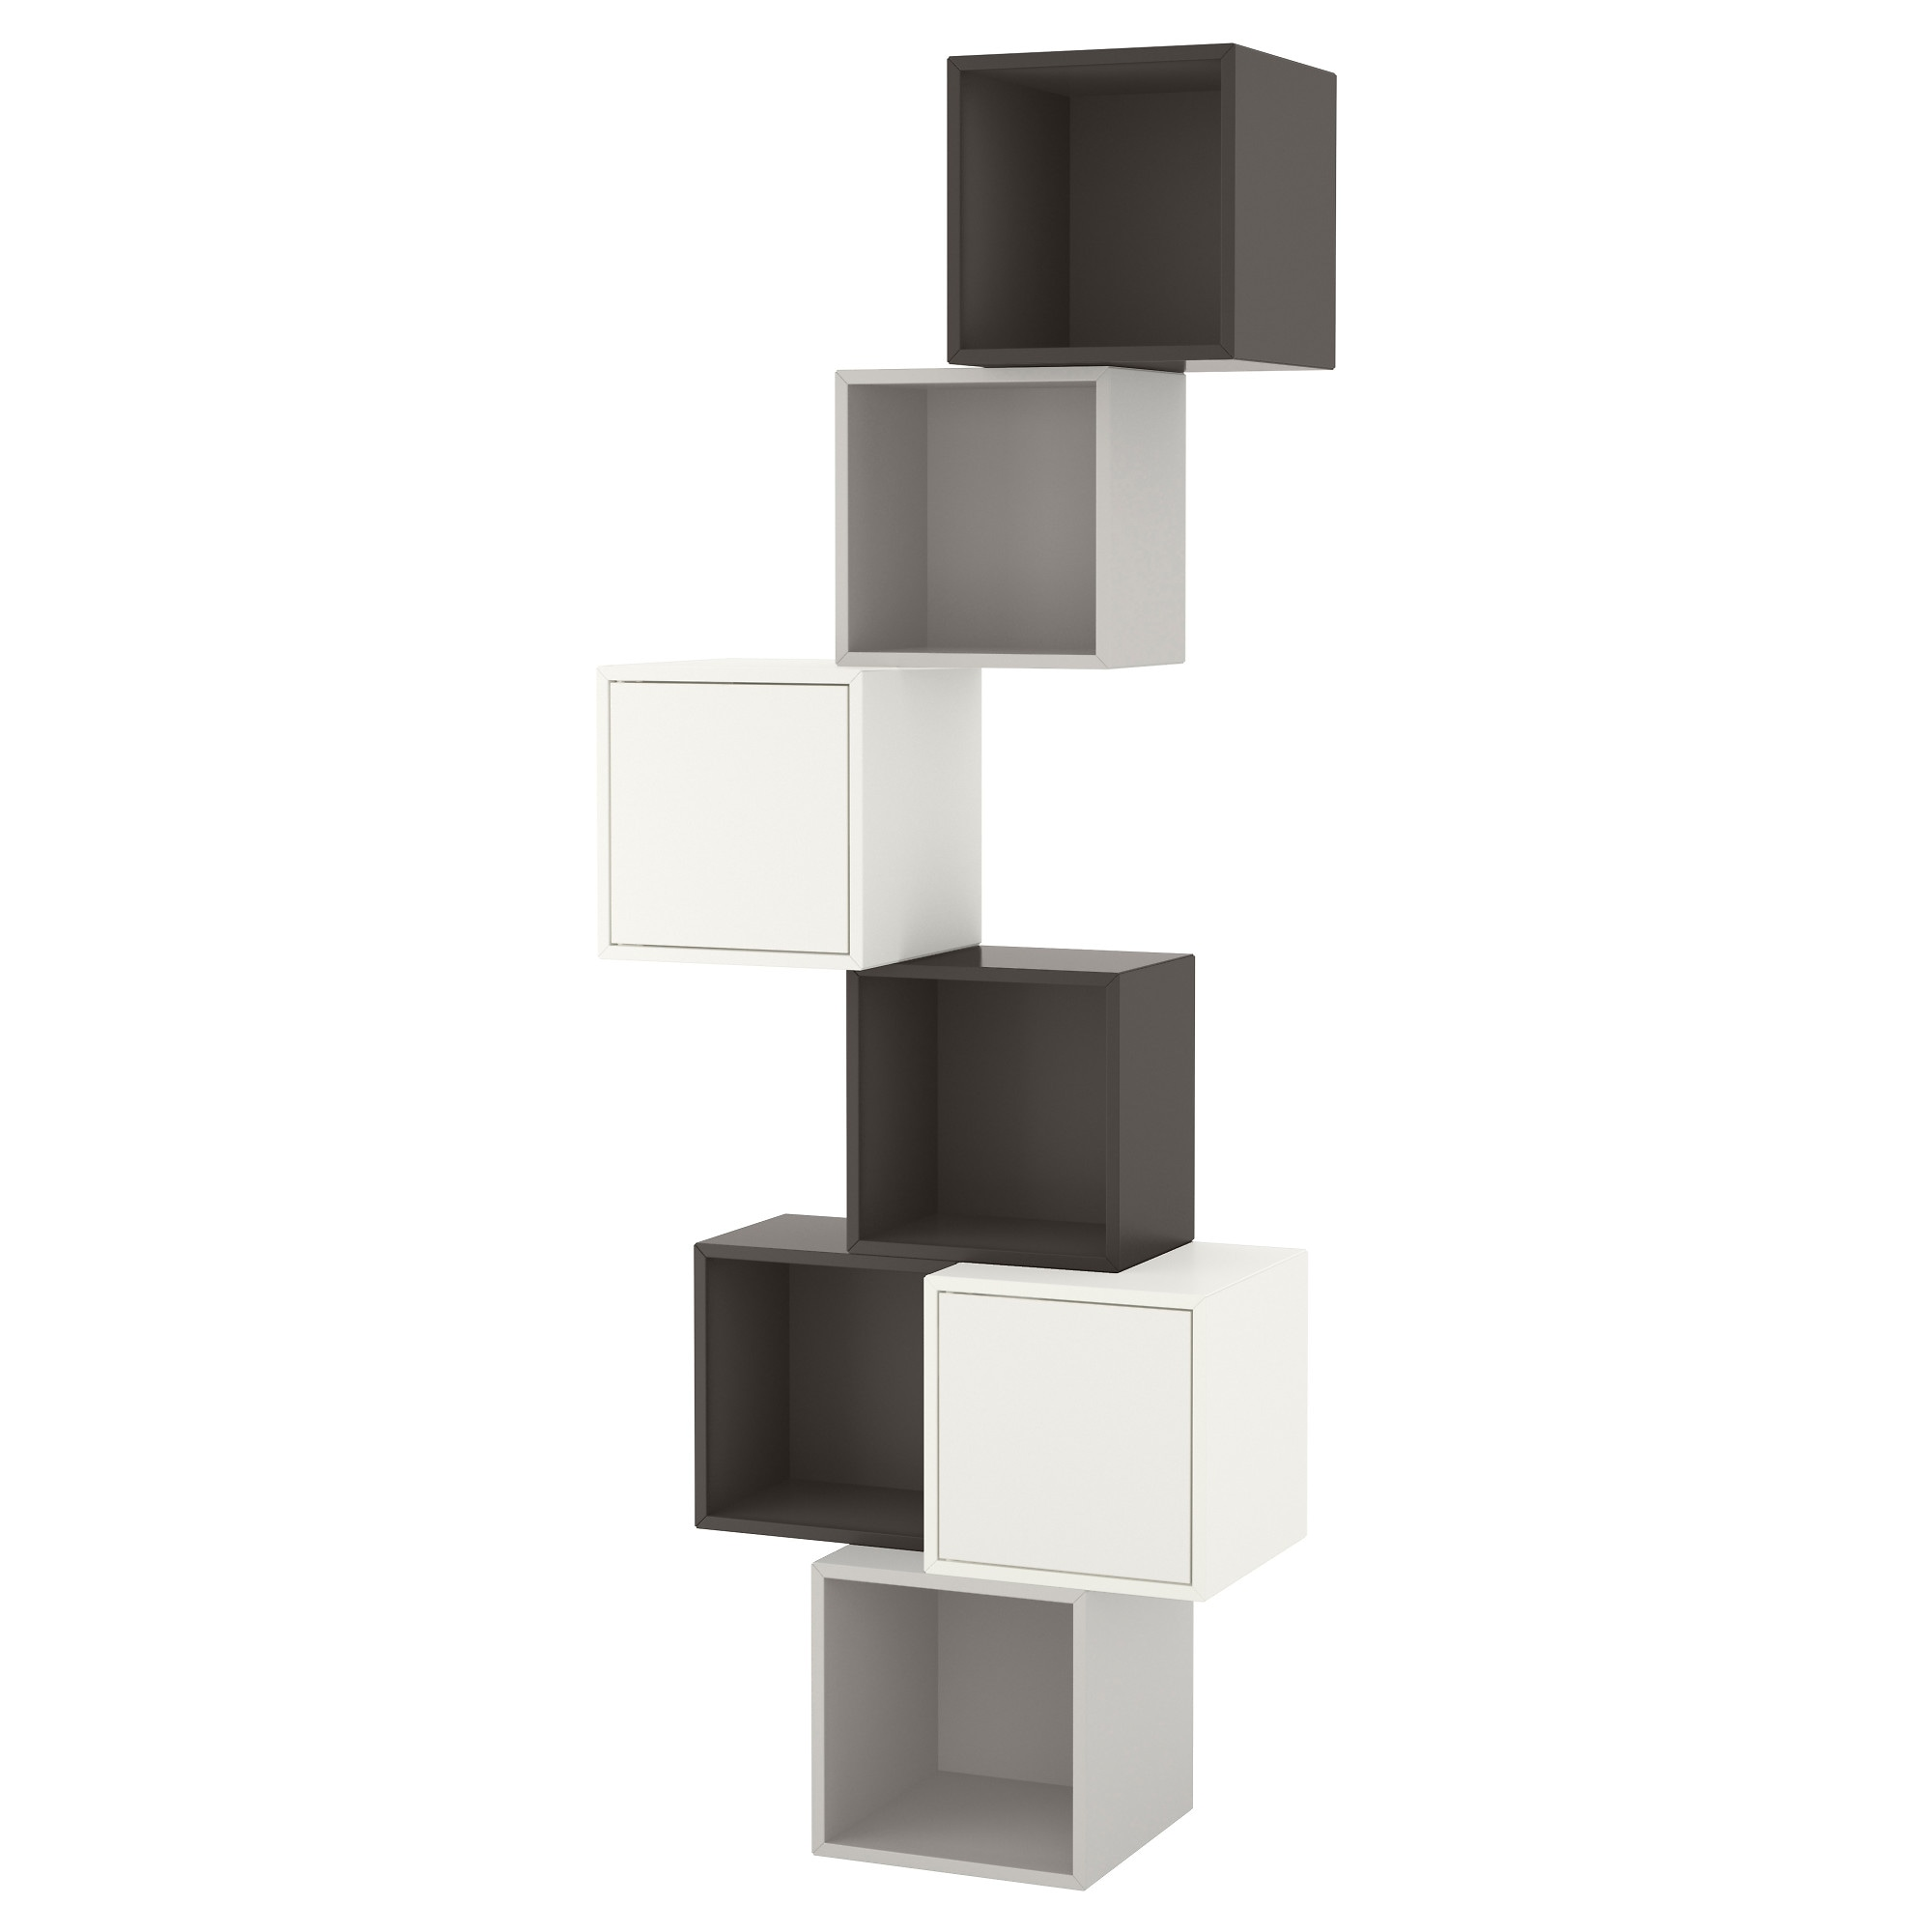 Awesome eket agencement rangement mural blancgris fonc for Meuble mural cube